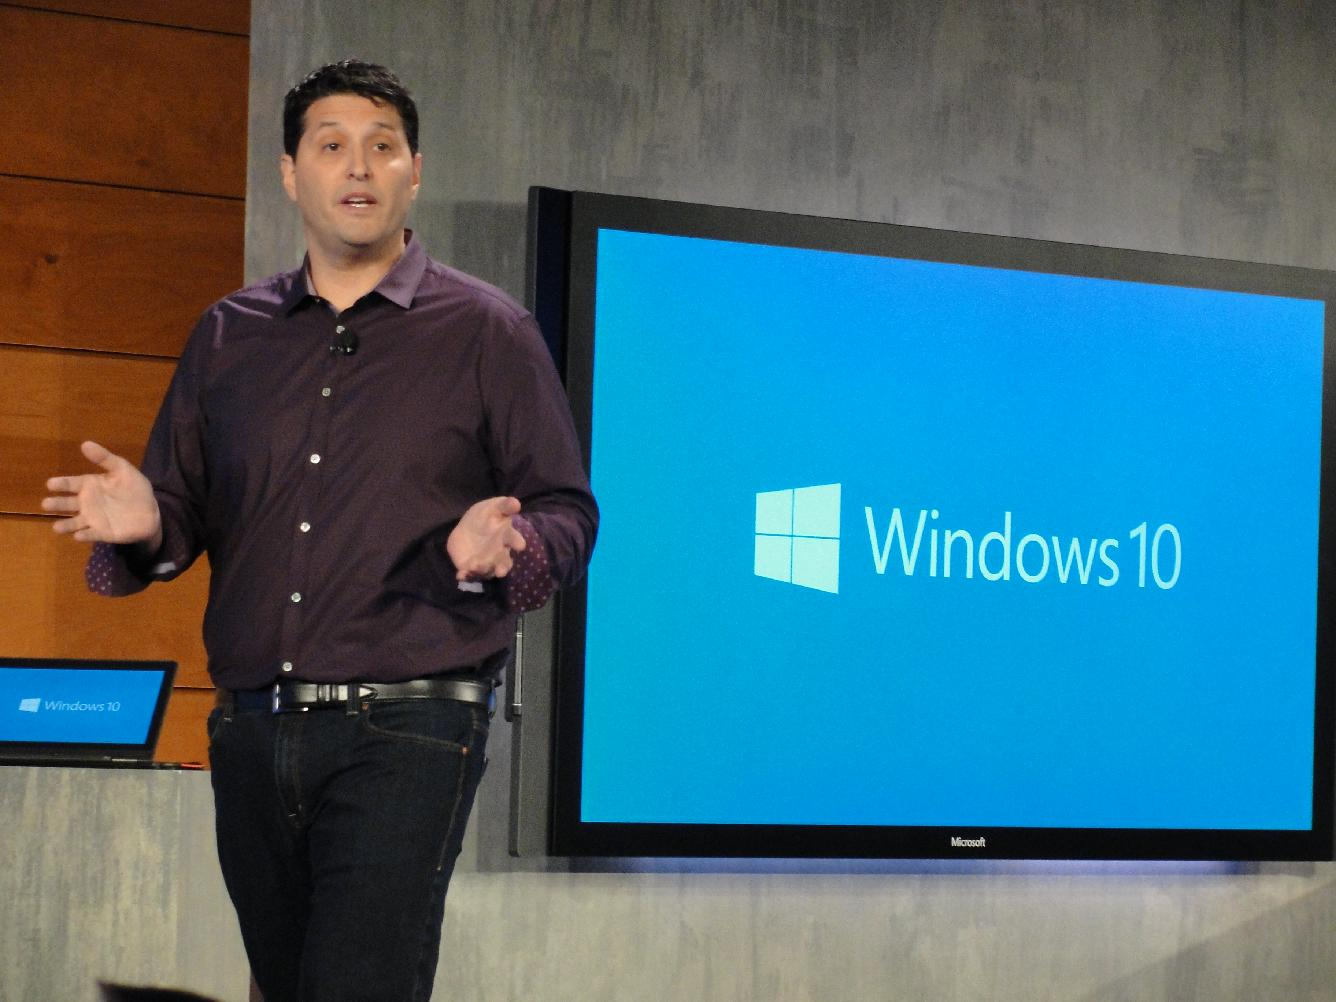 Windows 10 aims to be core of connected devices